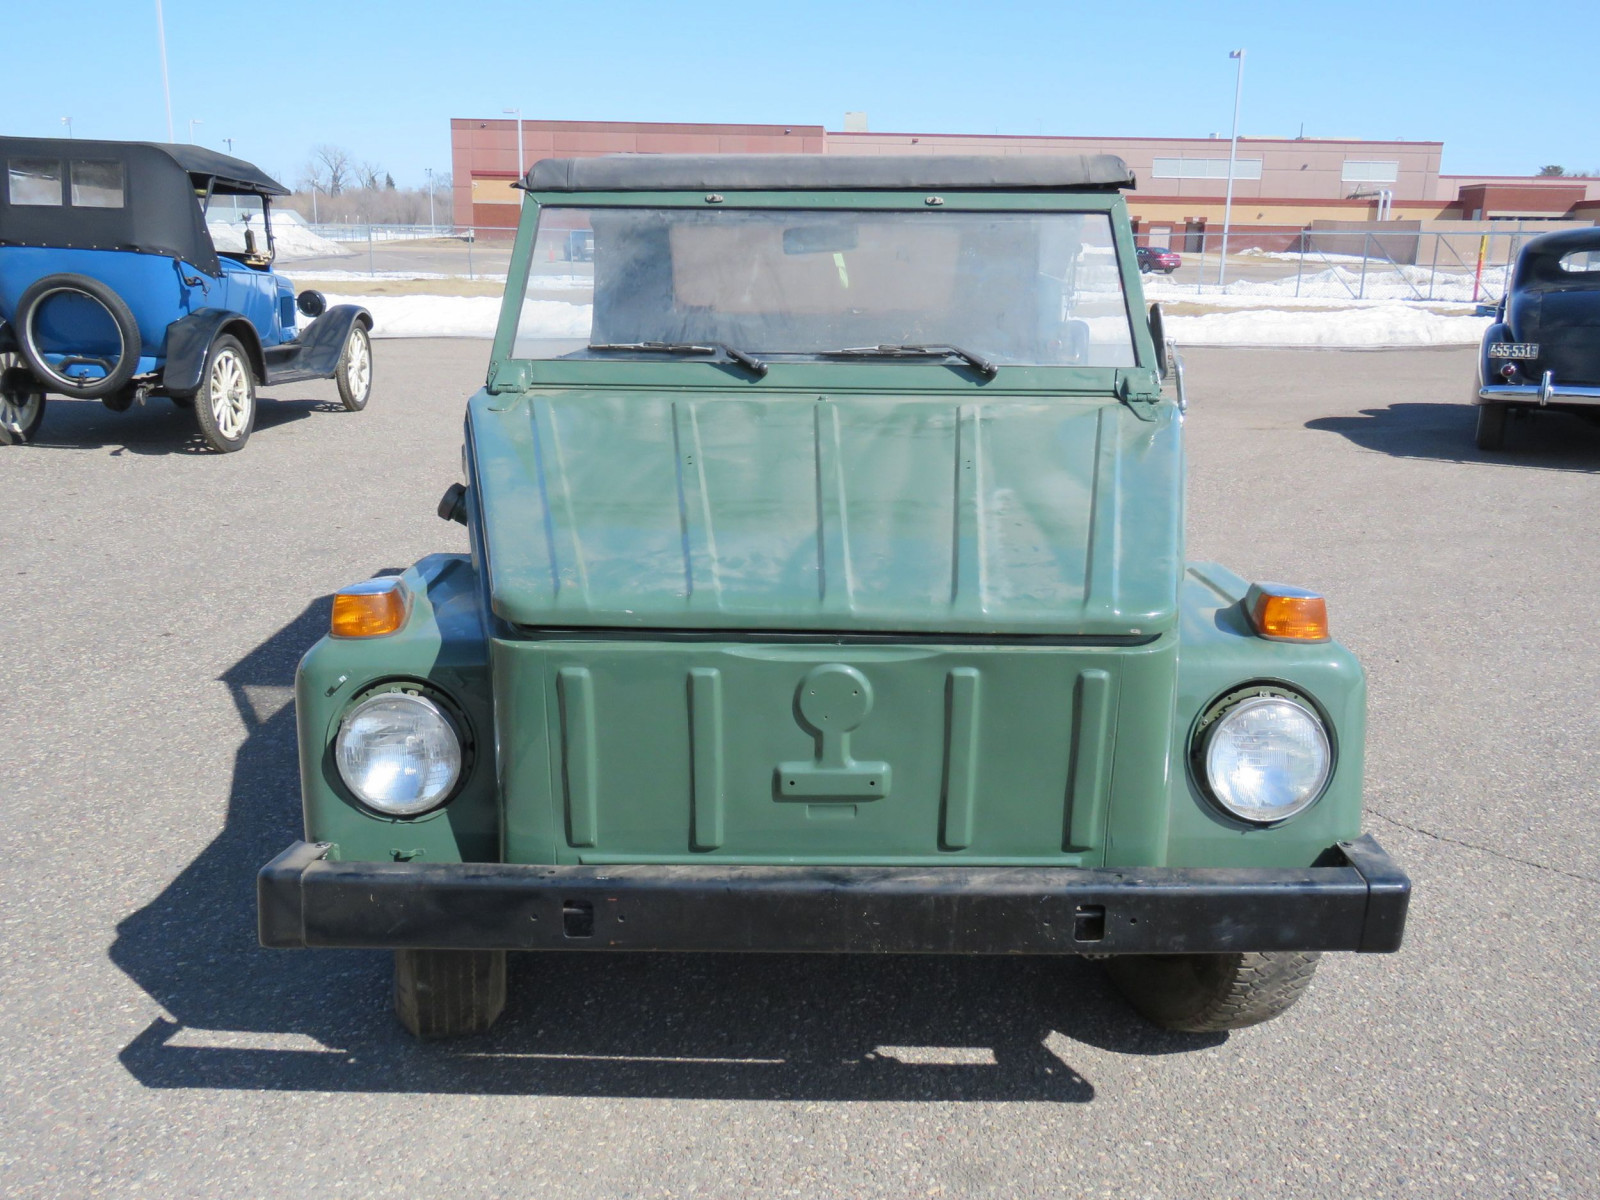 1974 Volkswagen Thing - Image 2